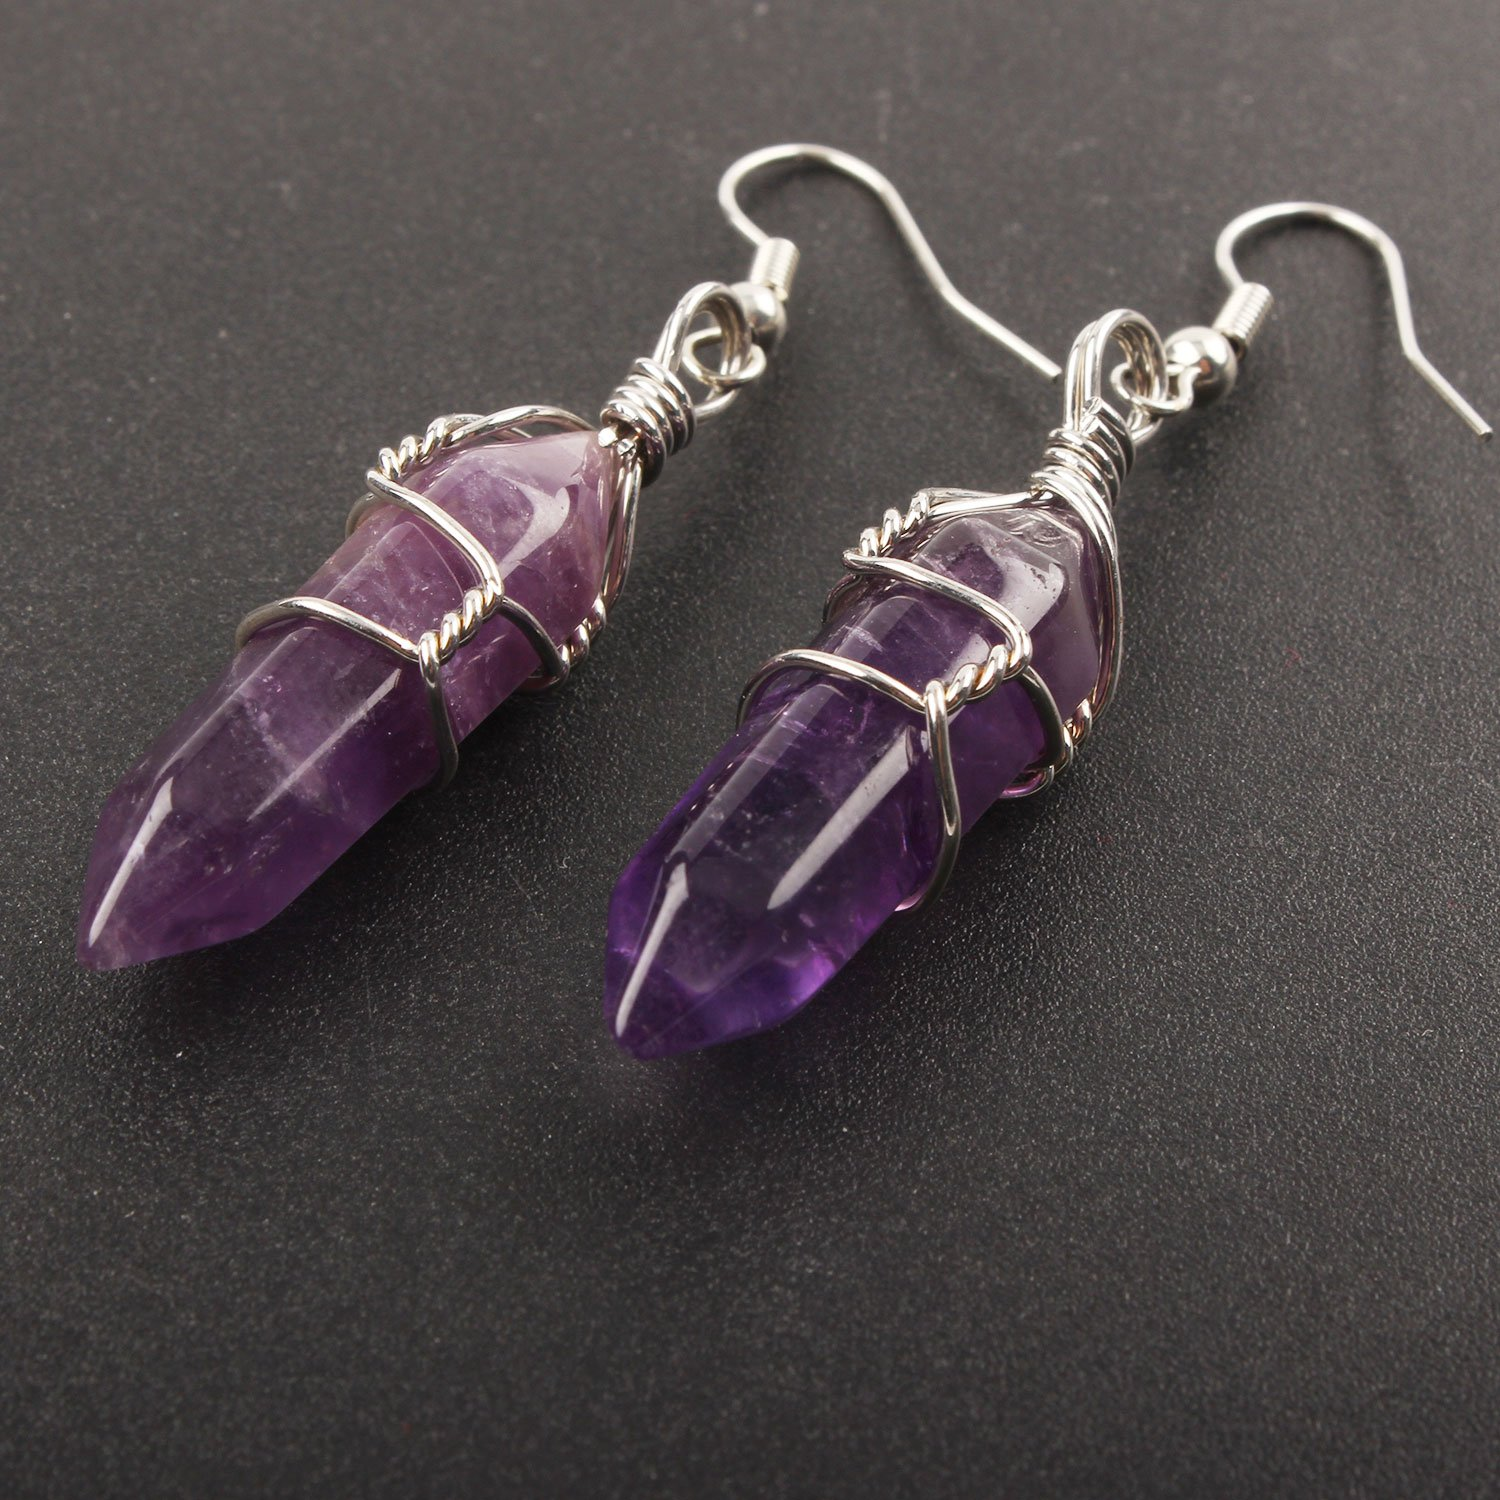 Real Natural Quartz Stone Healing Point Crystal Chakra Dangle Earrings Valentines day Mothers day Gift